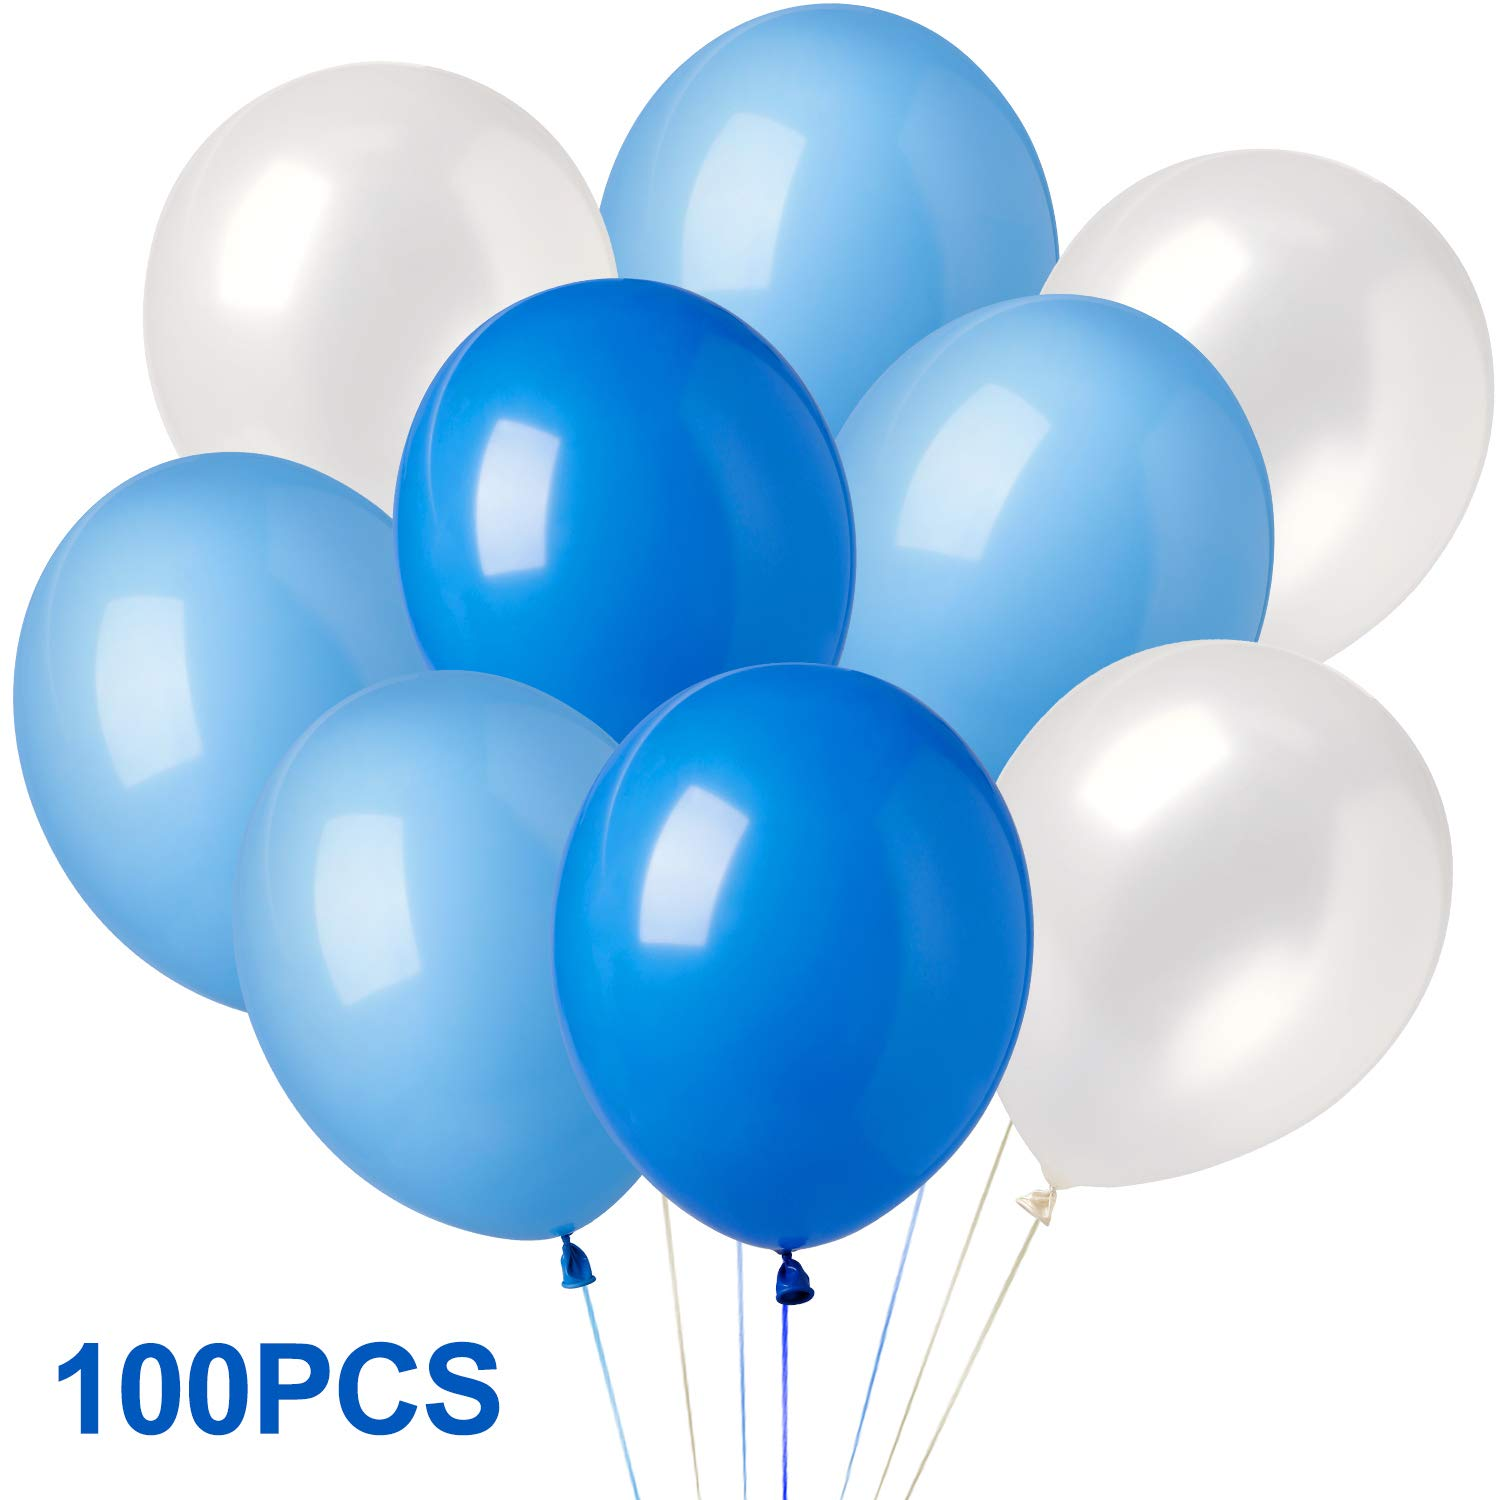 Elegear Birthday Balloons 100 Pcs, 12 Inches Assorted Bright Color Latex  Balloons for Wedding, Anniversary, Graduation and Party (Blue, White, Azure)